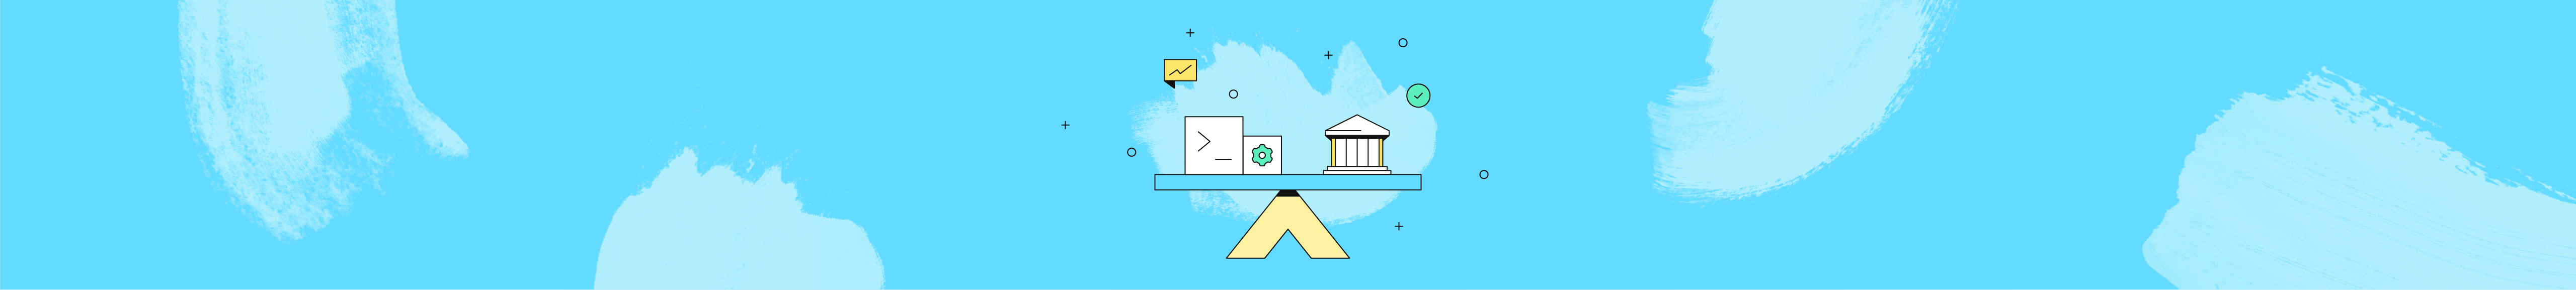 Open-banking-as-a-service: what does that actually mean and how does it work? banner